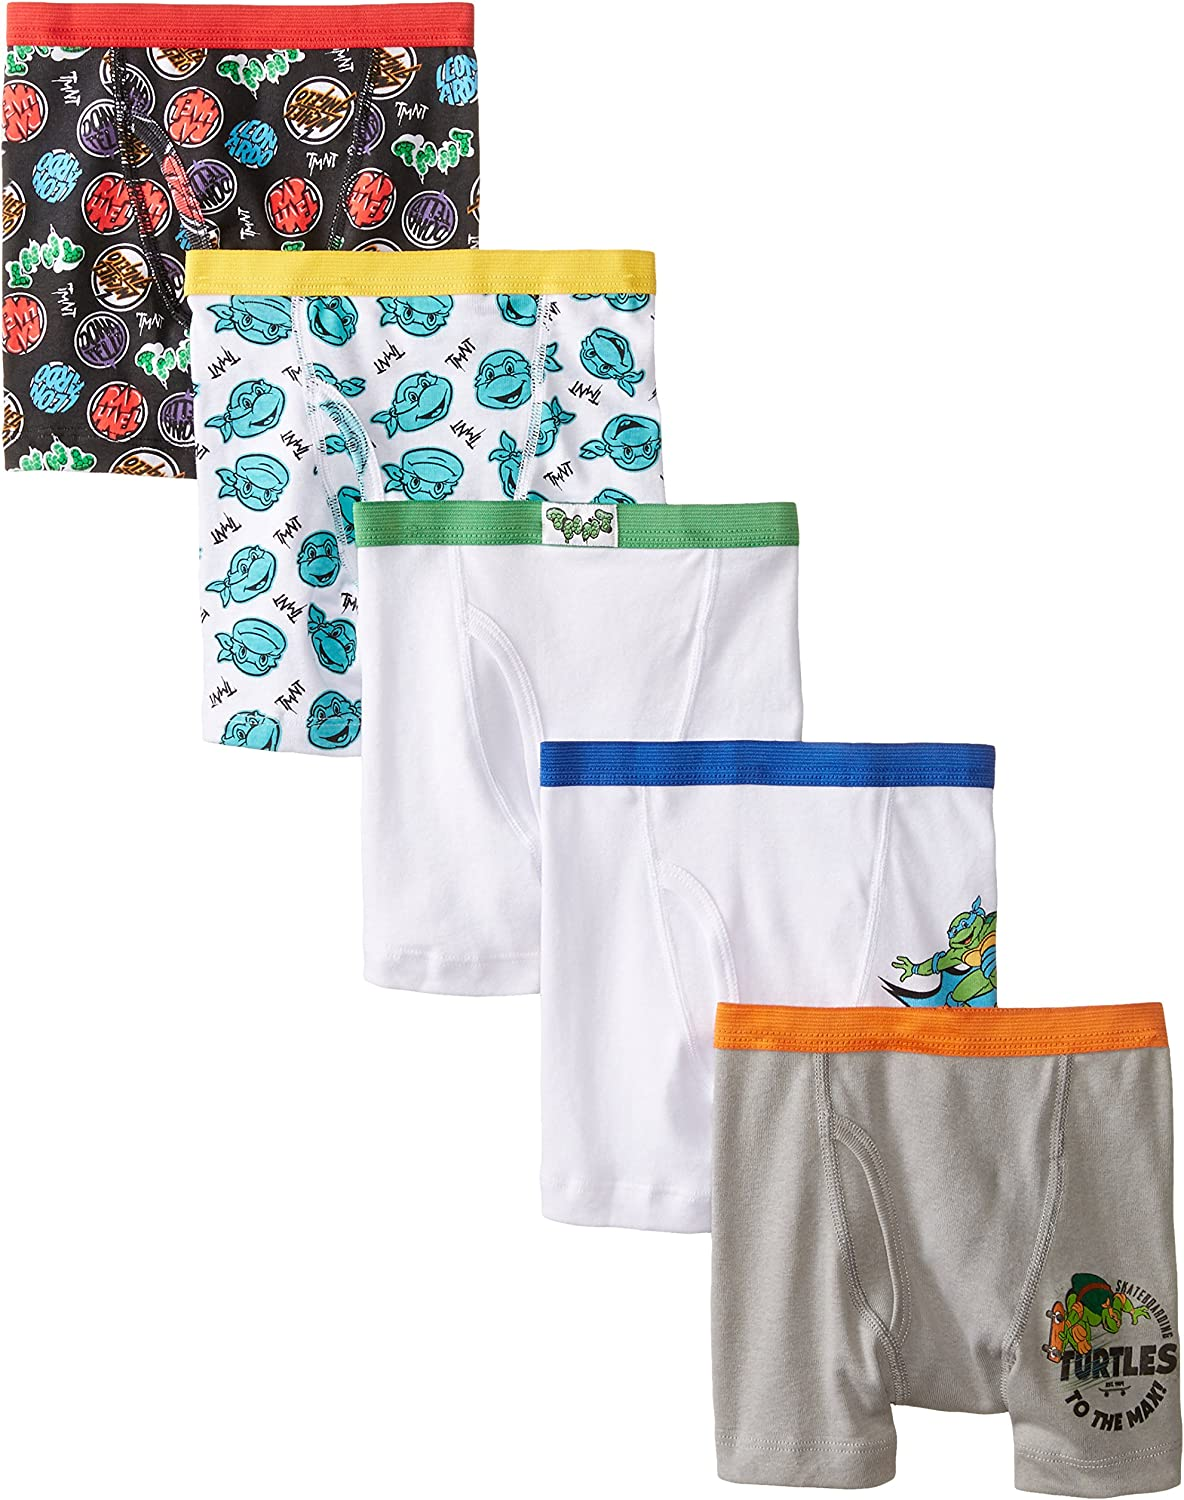 Nickelodeon Toddler Boys' Teenage Mutant Ninja Turtles 5pk Boxer Brief, TB Assorted, 2T/3T